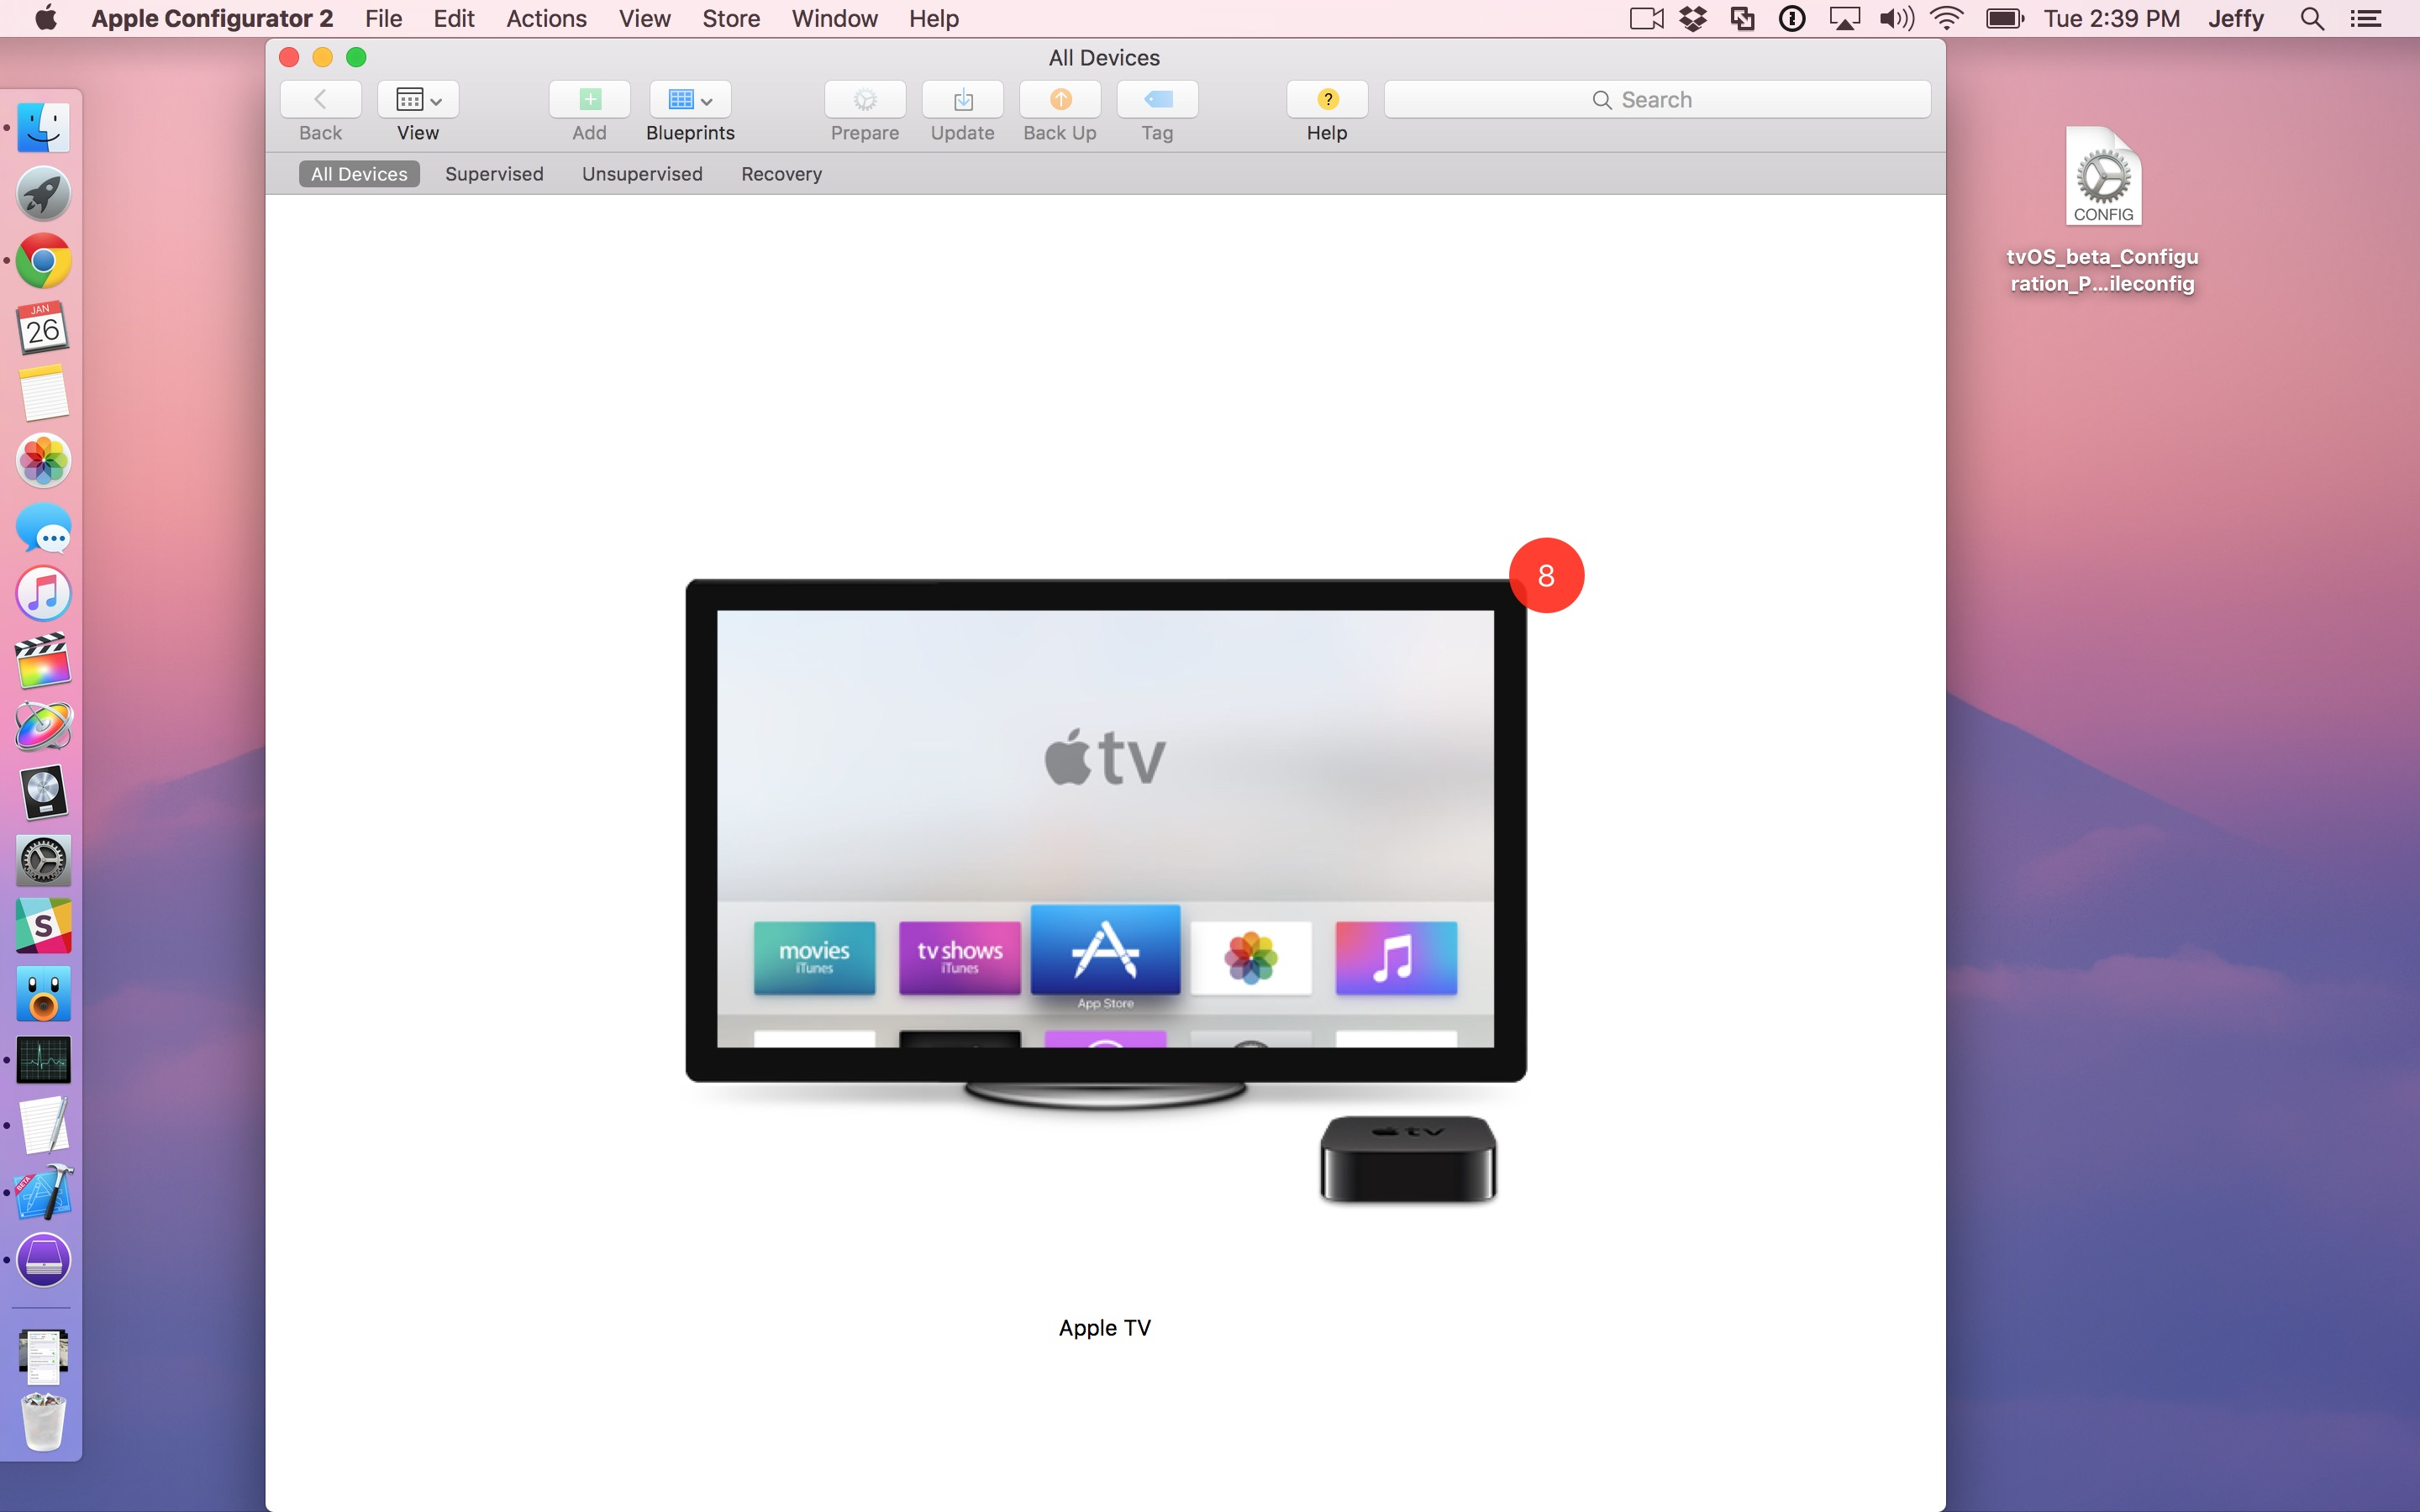 Apple Configurator Launch